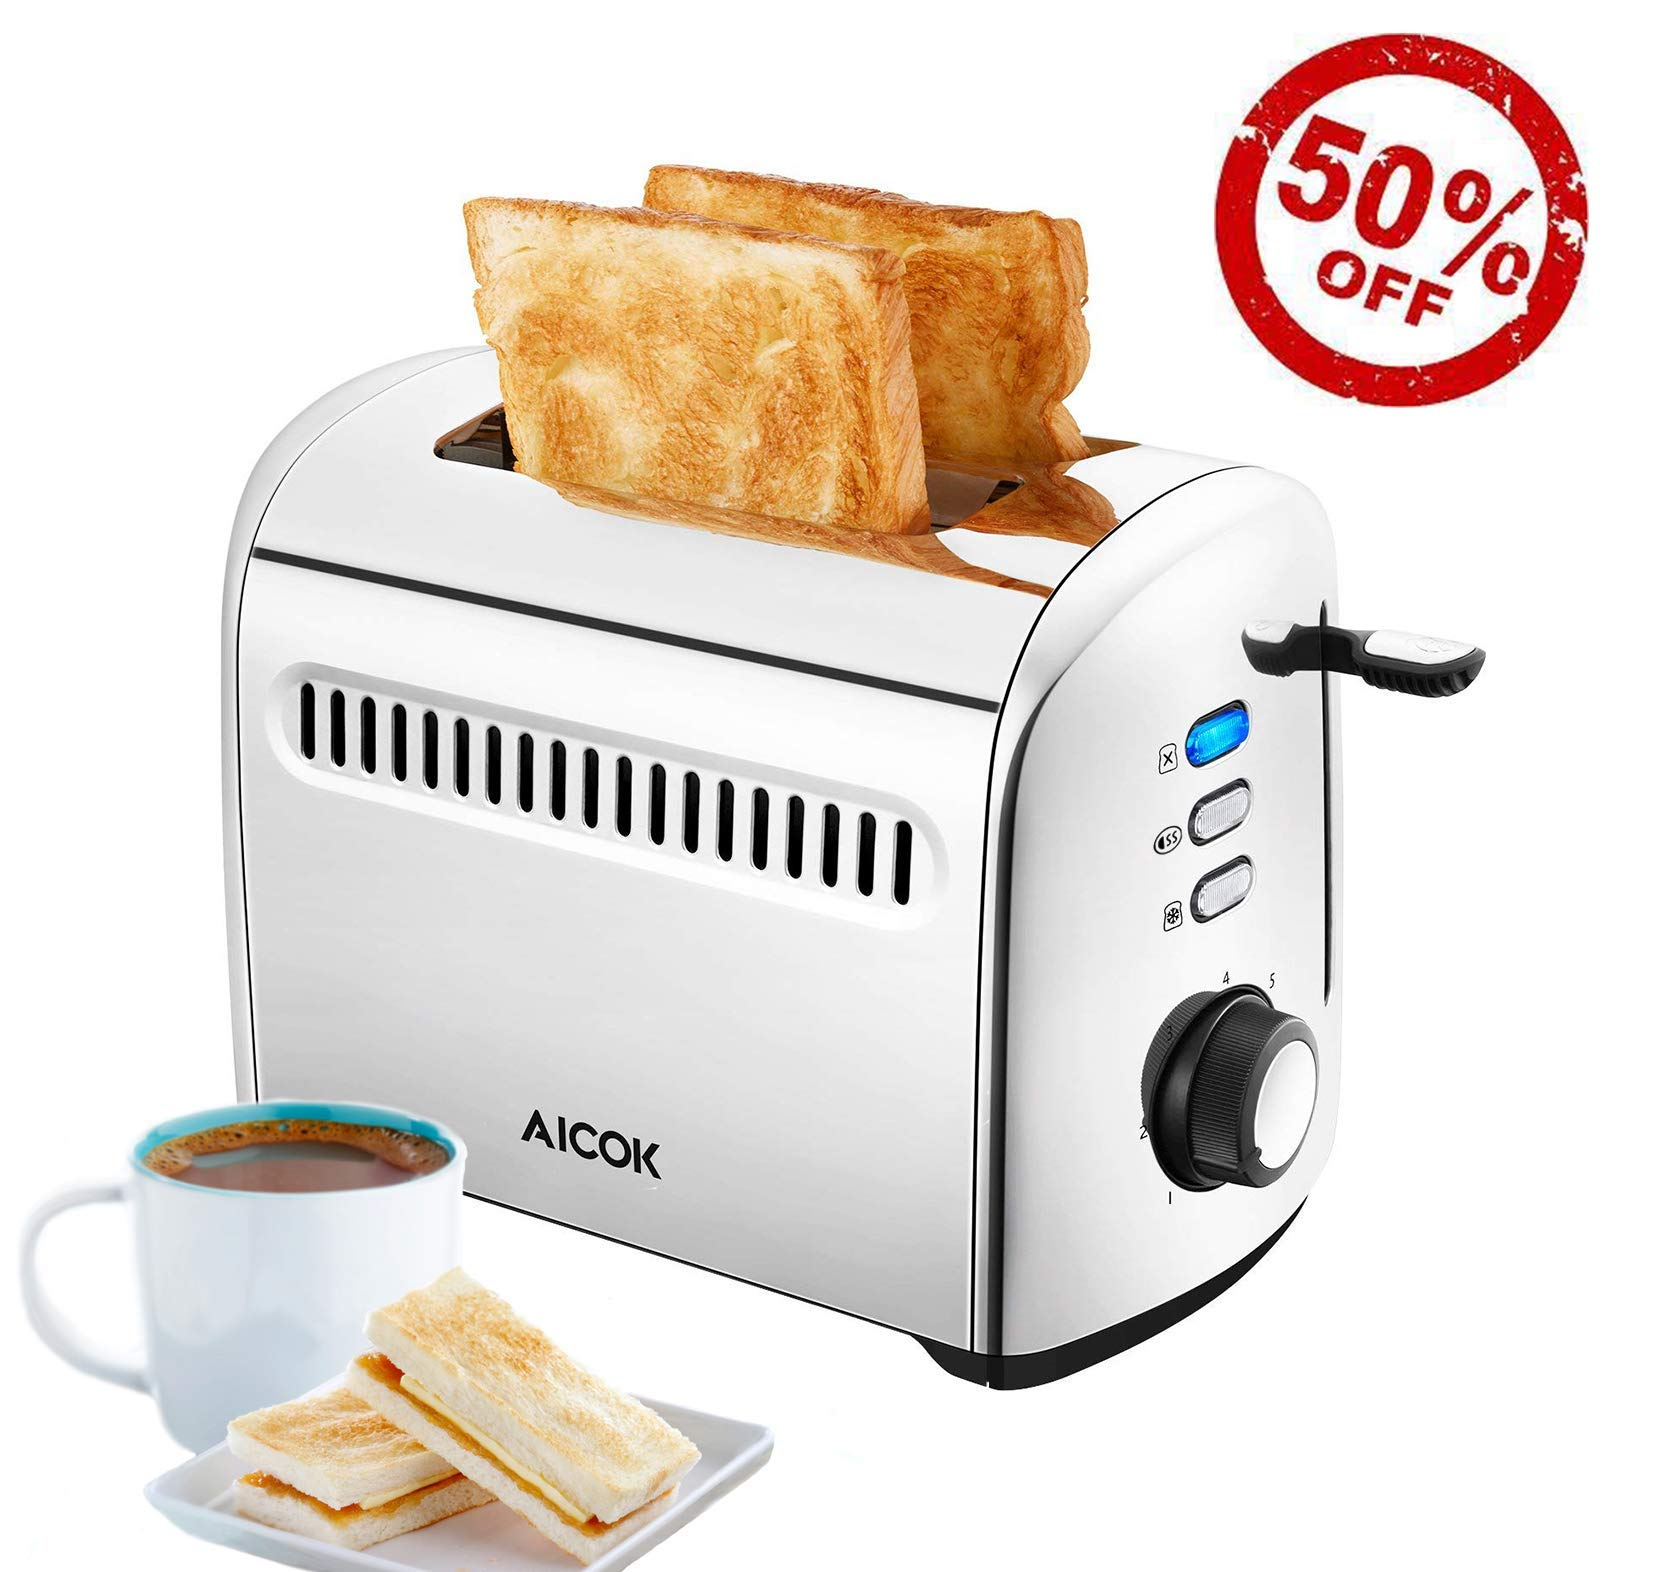 Toaster 2 Slice AICOK Extra-Wide Slots Stainless Steel Toasters with Bagel Defrost Cancel Function, 7 Toast Shade Level, Removable Crumb Tray, High Lift Level, 850W by AICOK